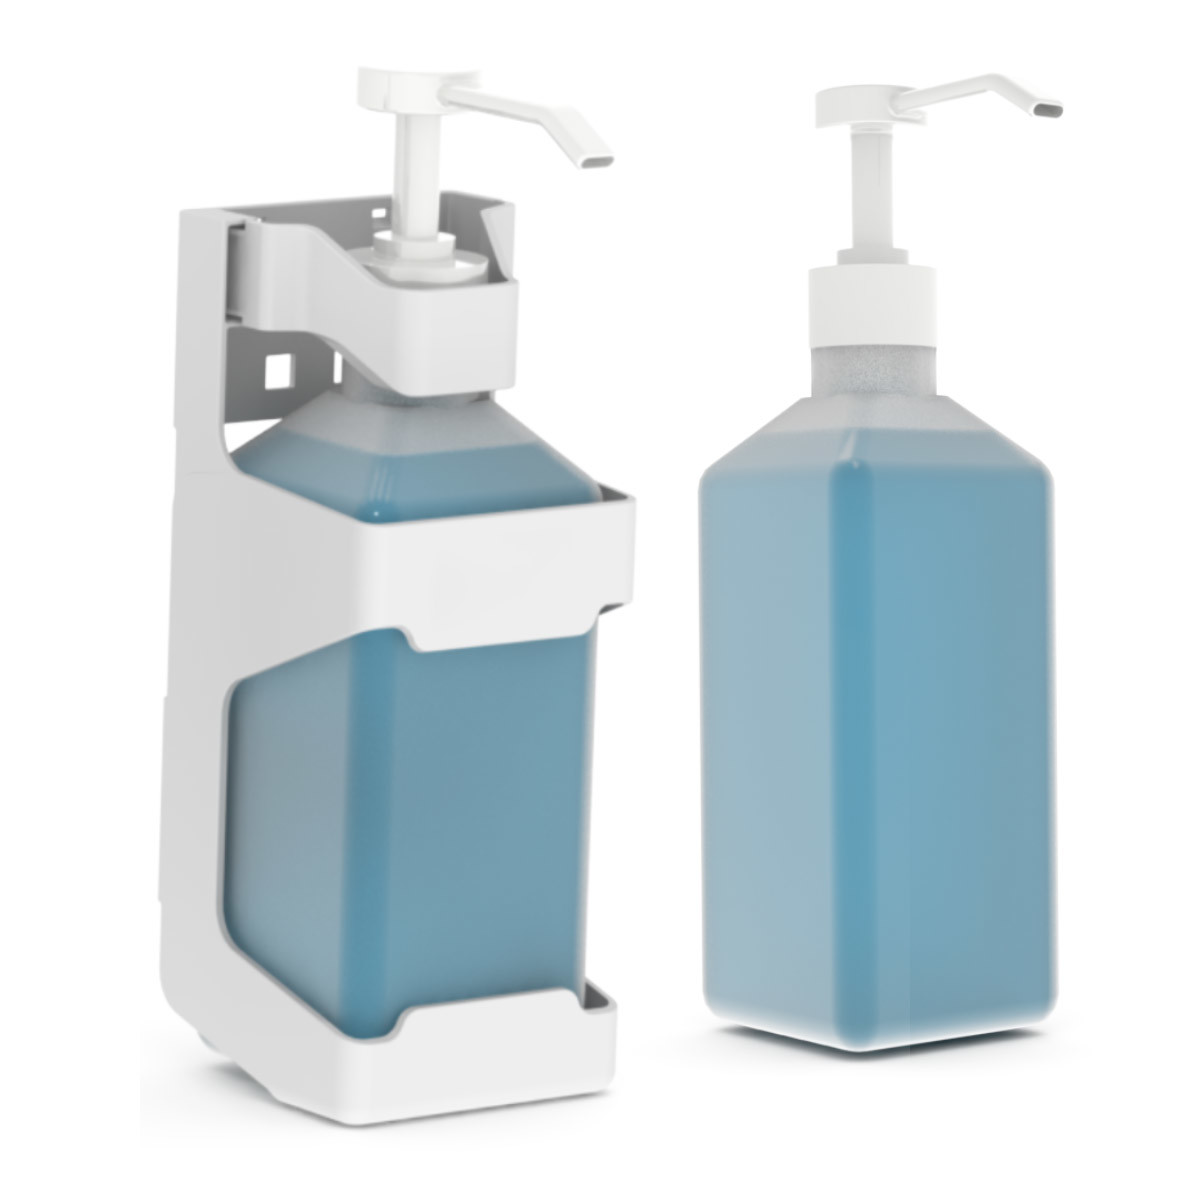 Hand sanitizer bottle holder